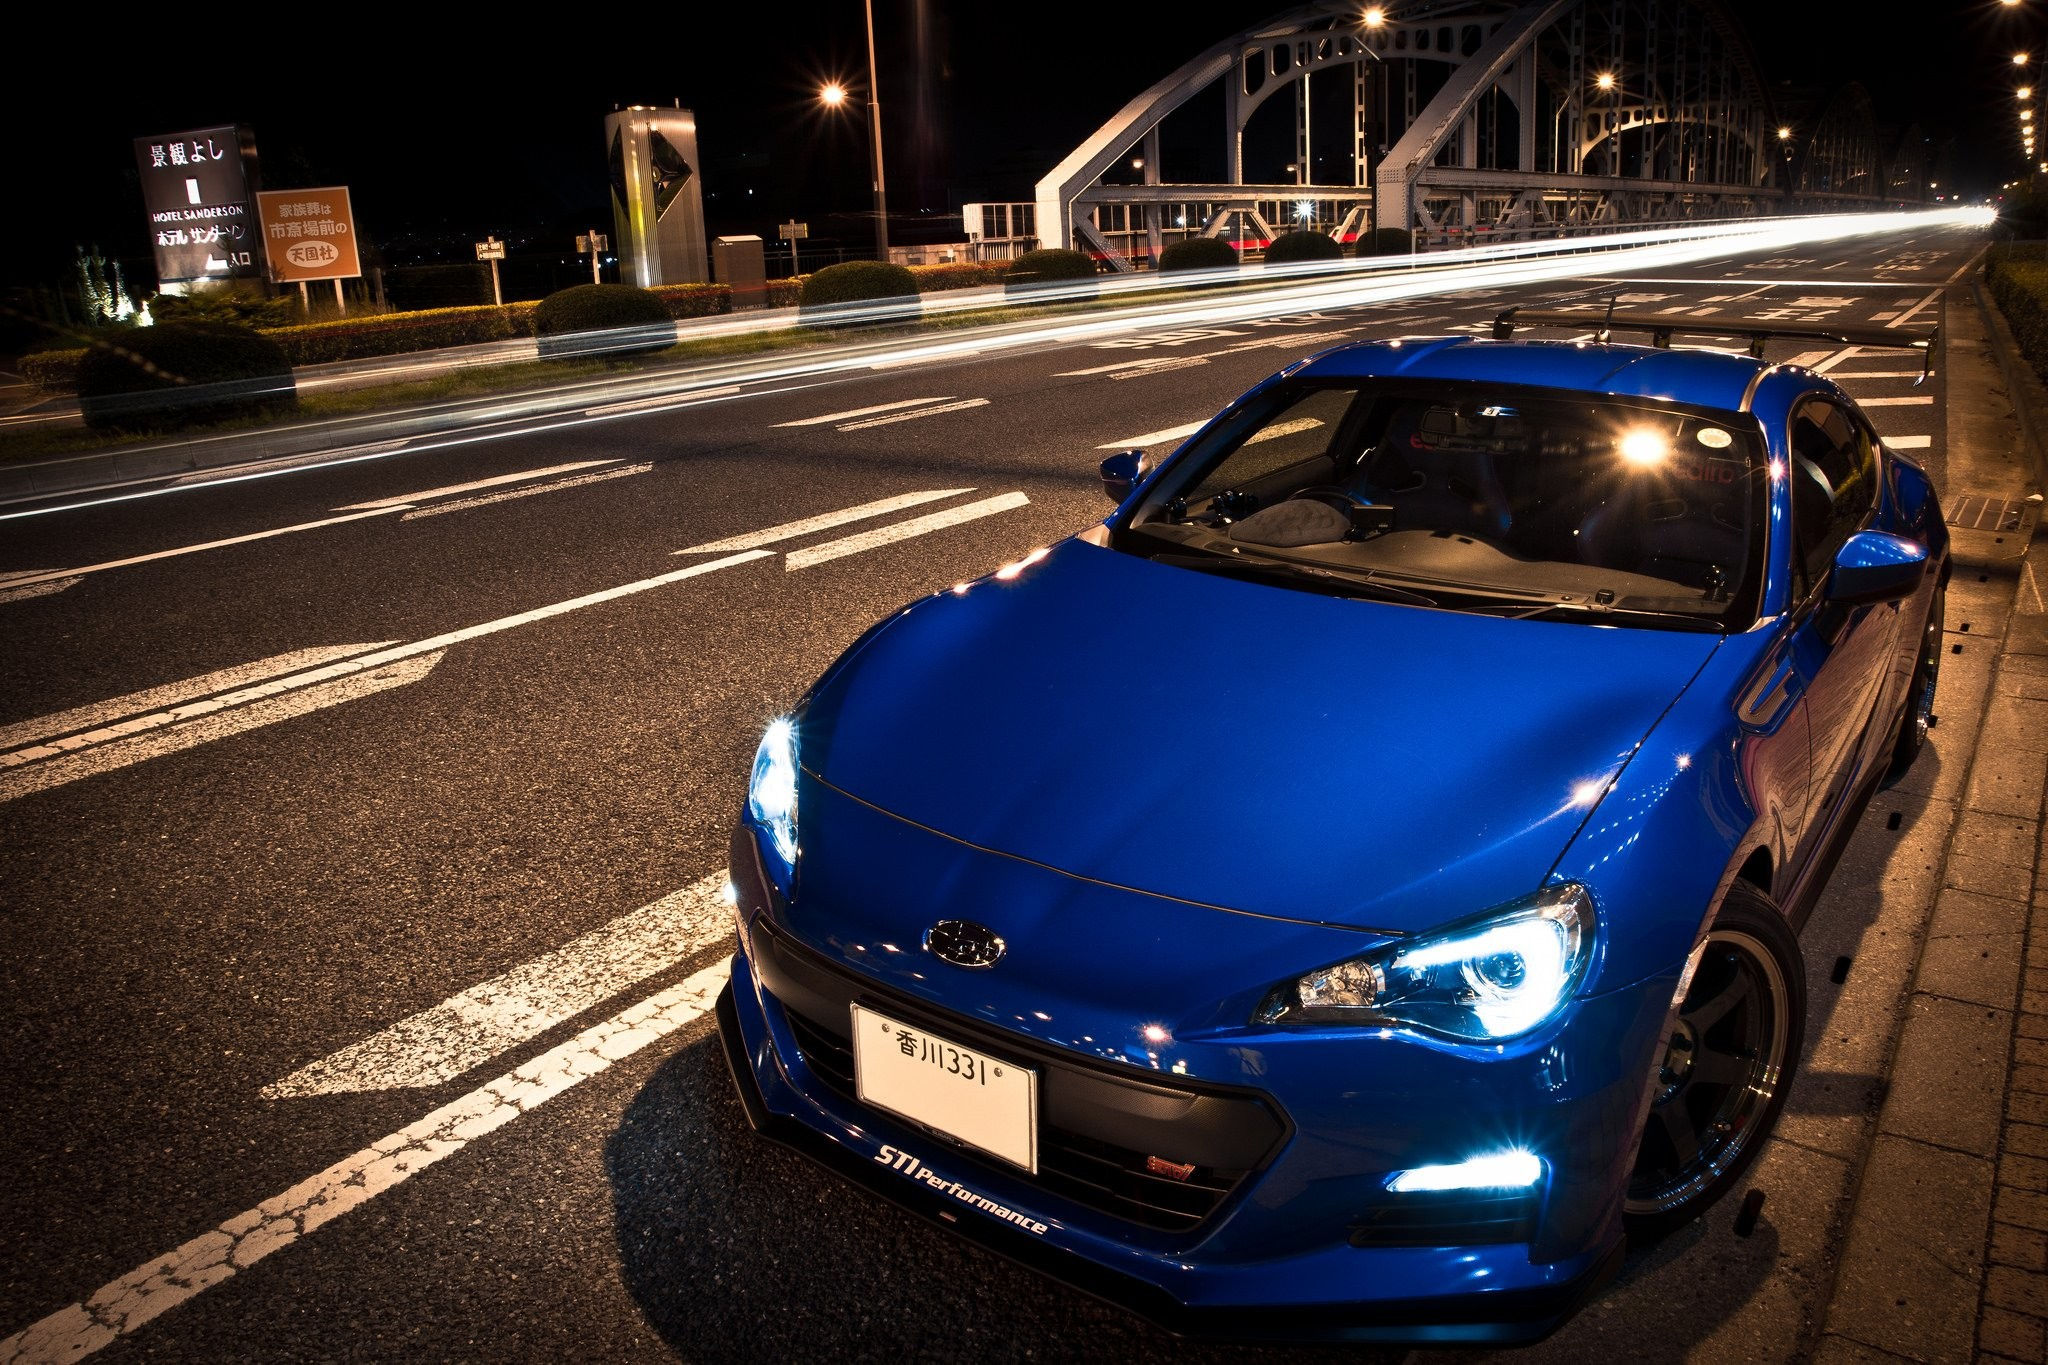 … toyota gt86 scion frs subaru brz coupe tuning cars an wallpaper …